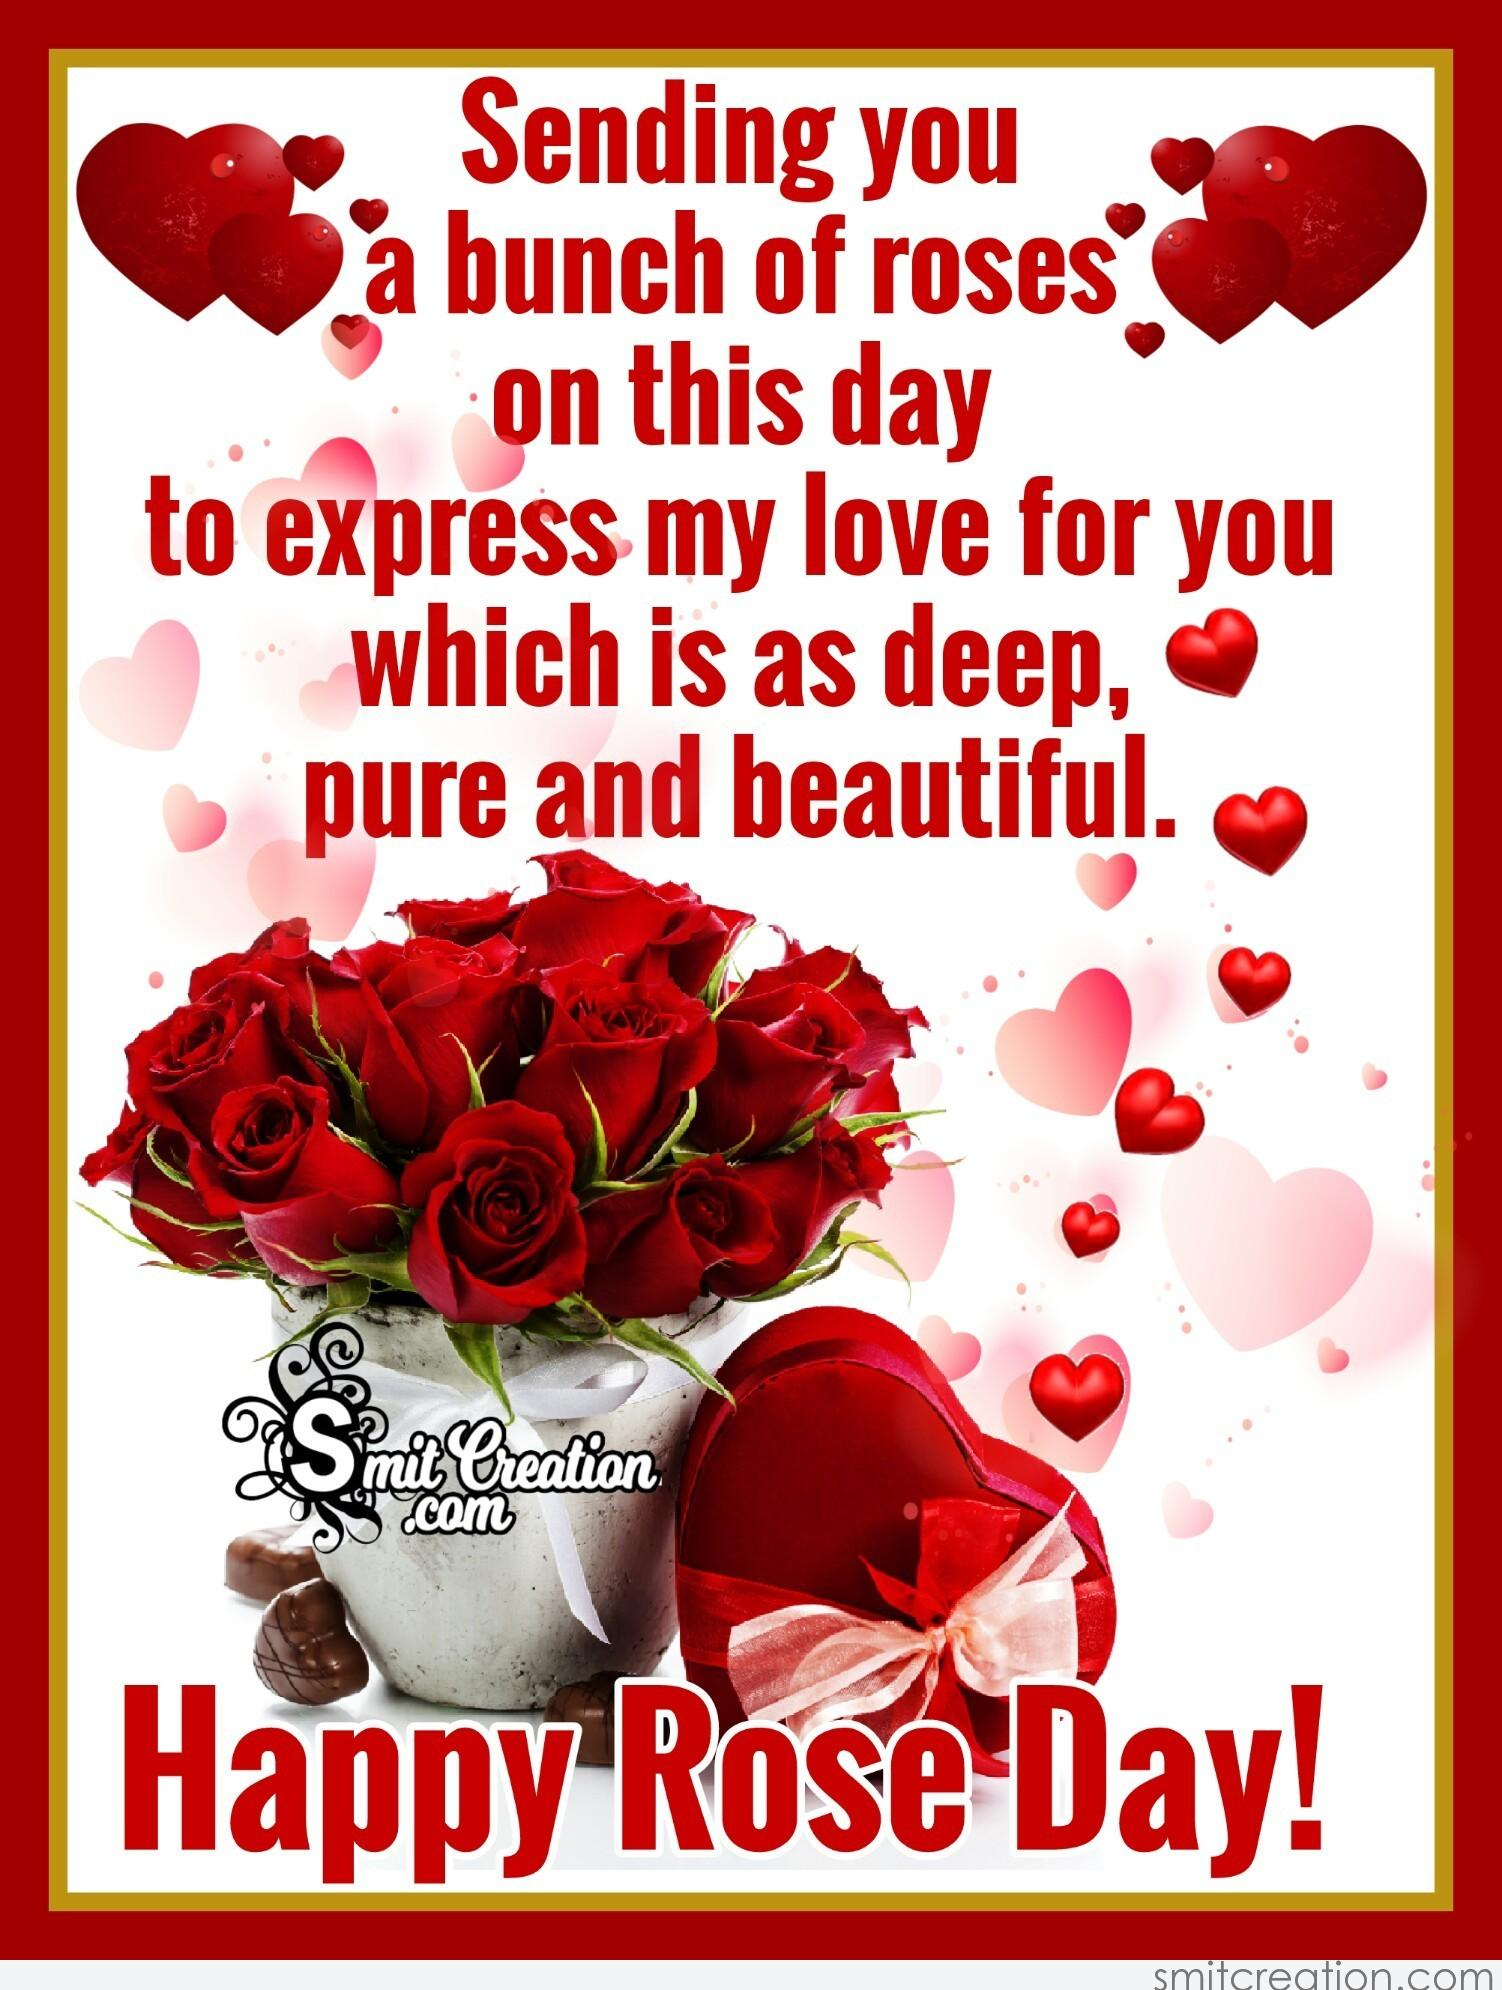 Rose Day Pictures and Graphics - SmitCreation.com